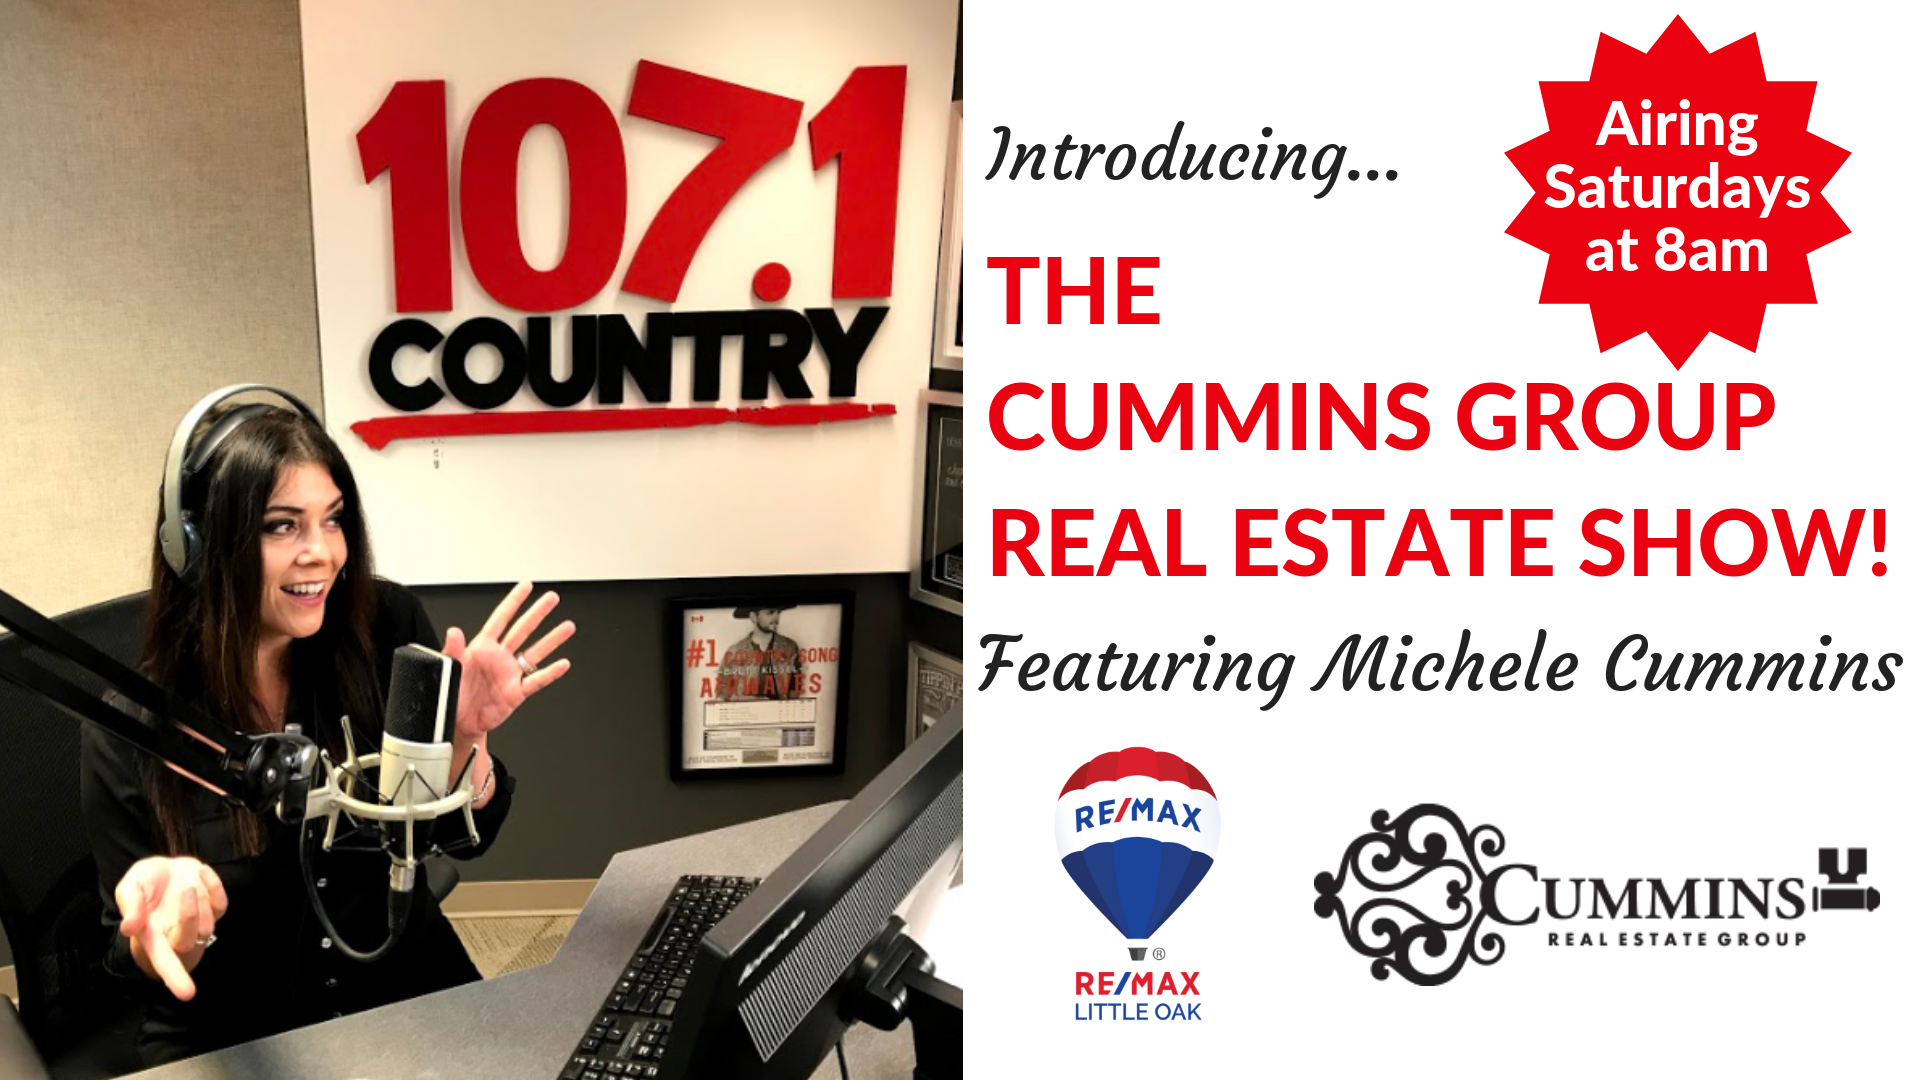 Tune-In to Radio 107.1 to listen to the Cummins Group Real Estate Show!